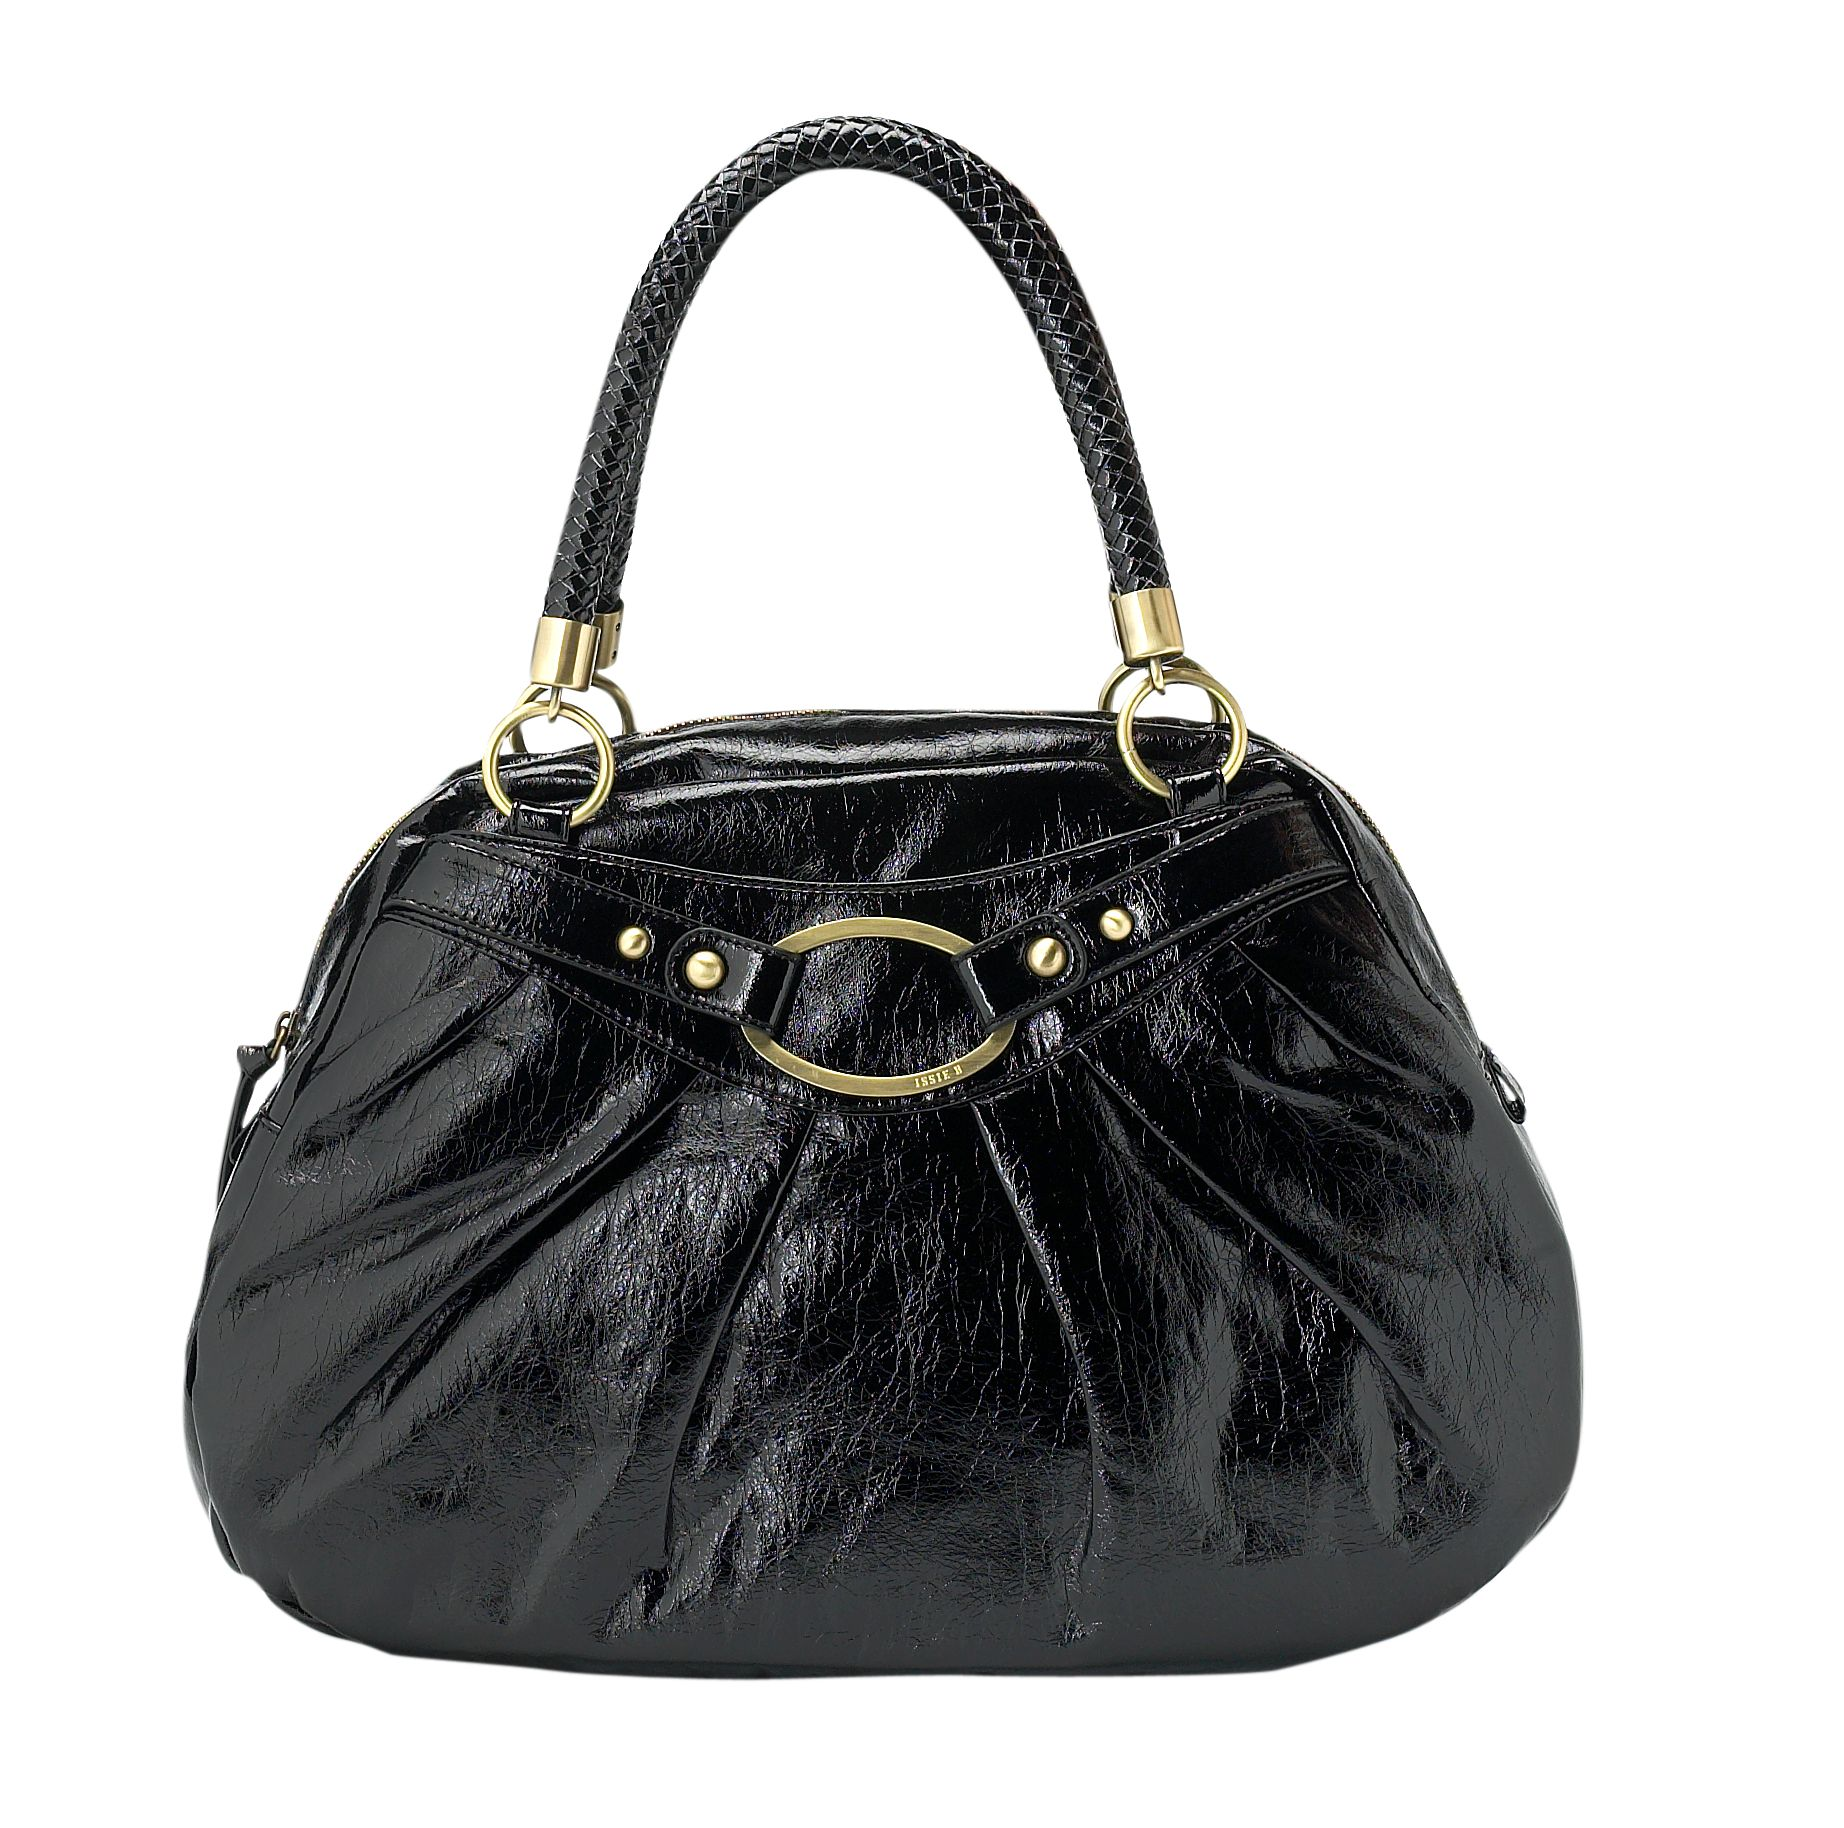 Issie B Poppy large pu patent shoulder tote bag